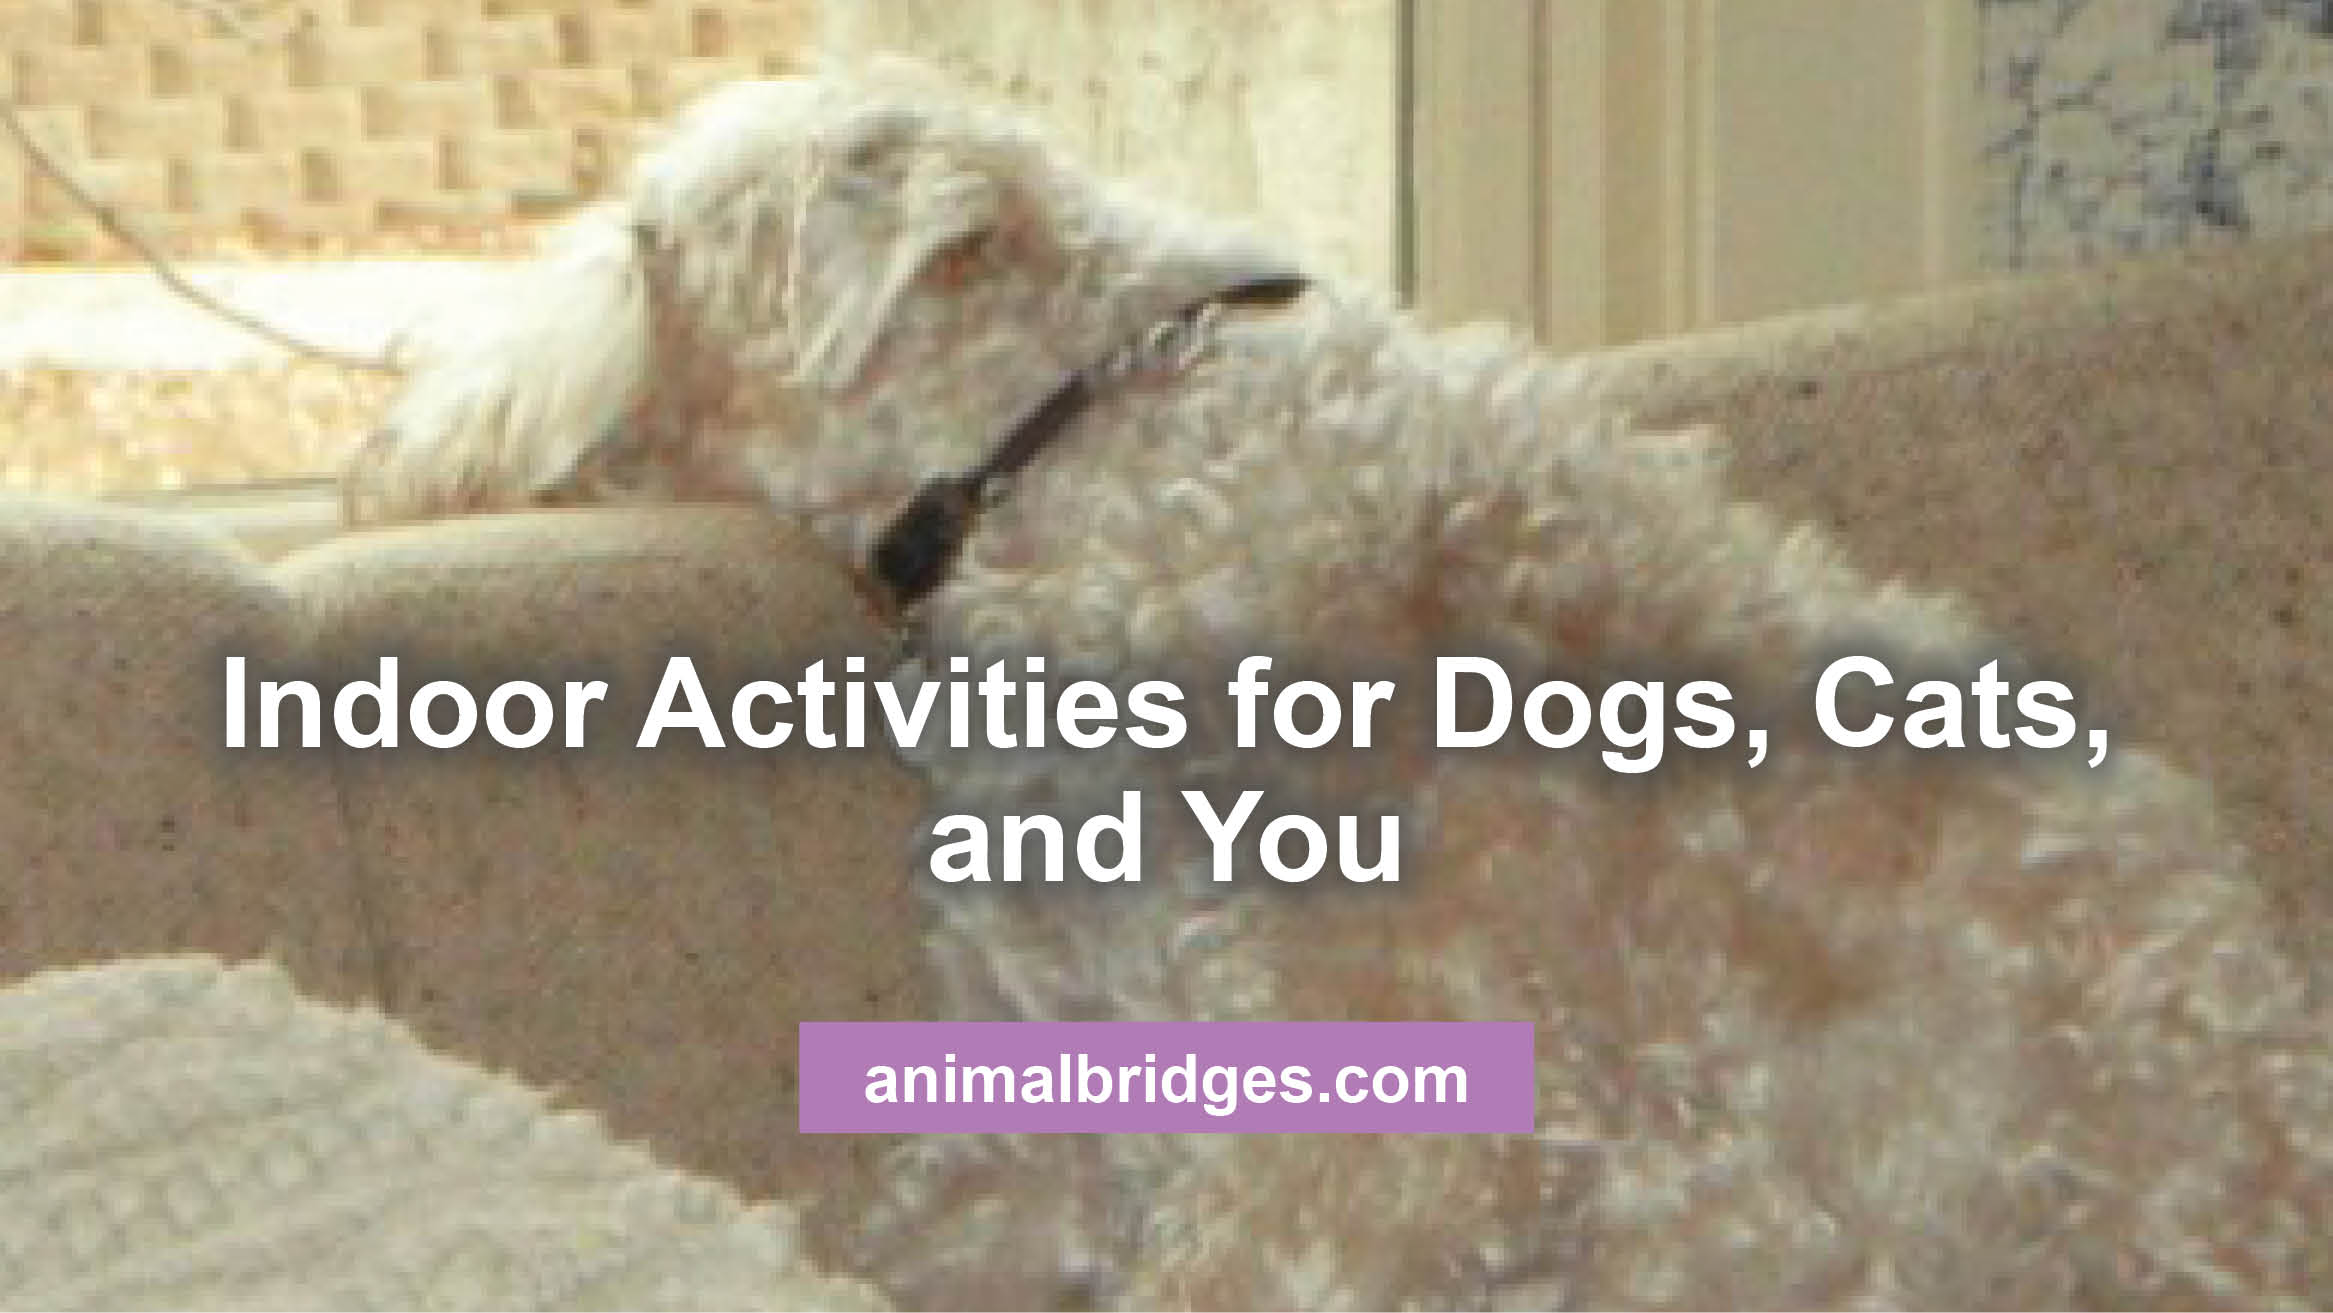 Indoor activities for dogs, cats, and you